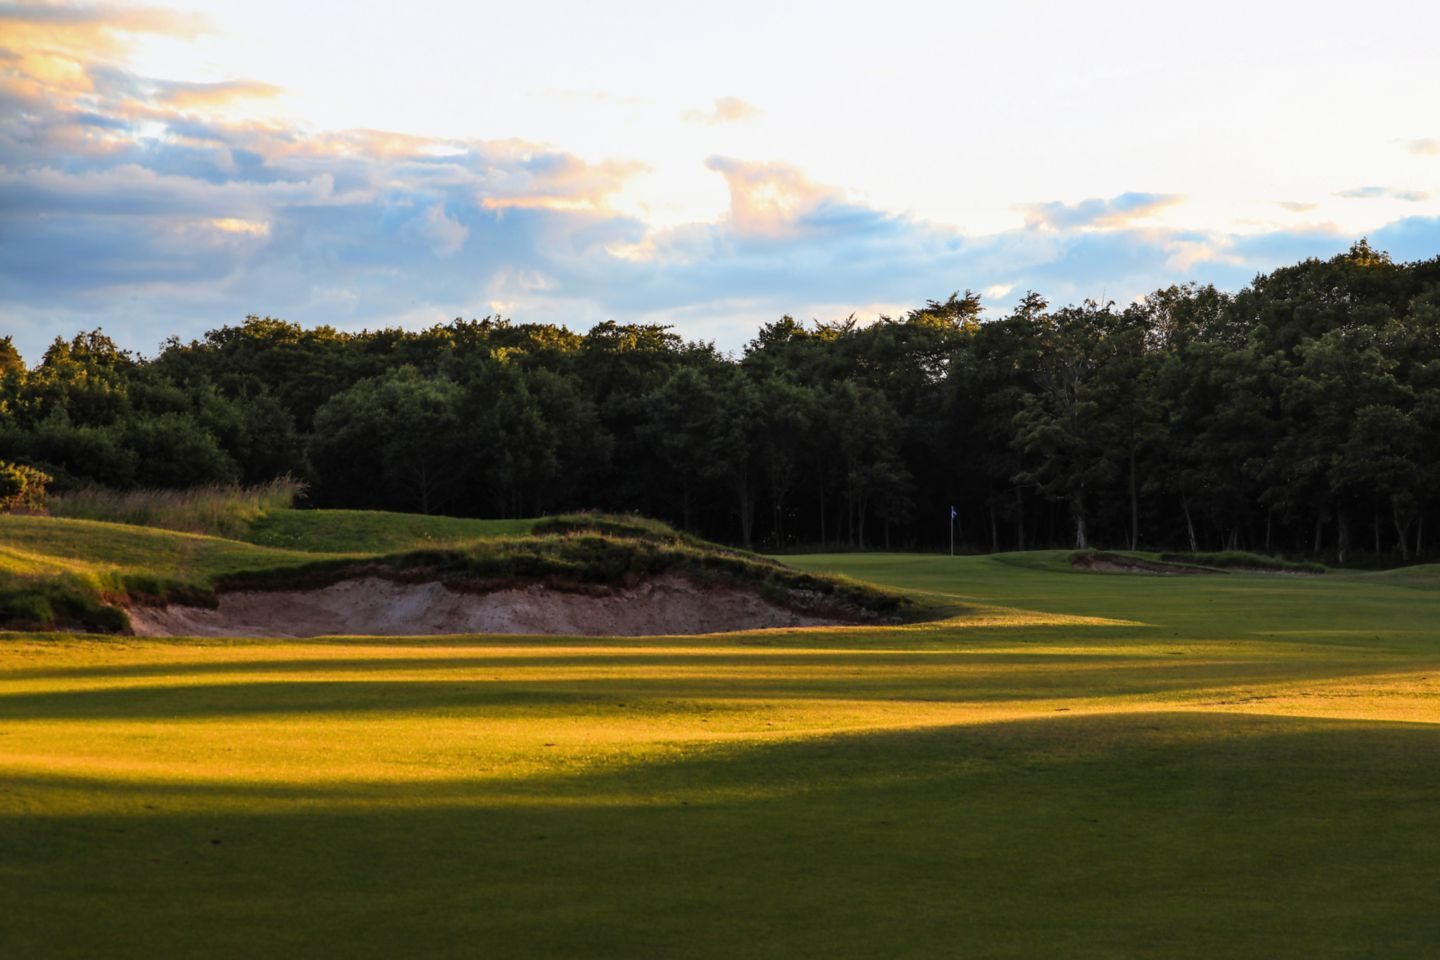 No. 5 Beeches. The Duke's 5th green from the fairway, golden from the sun.